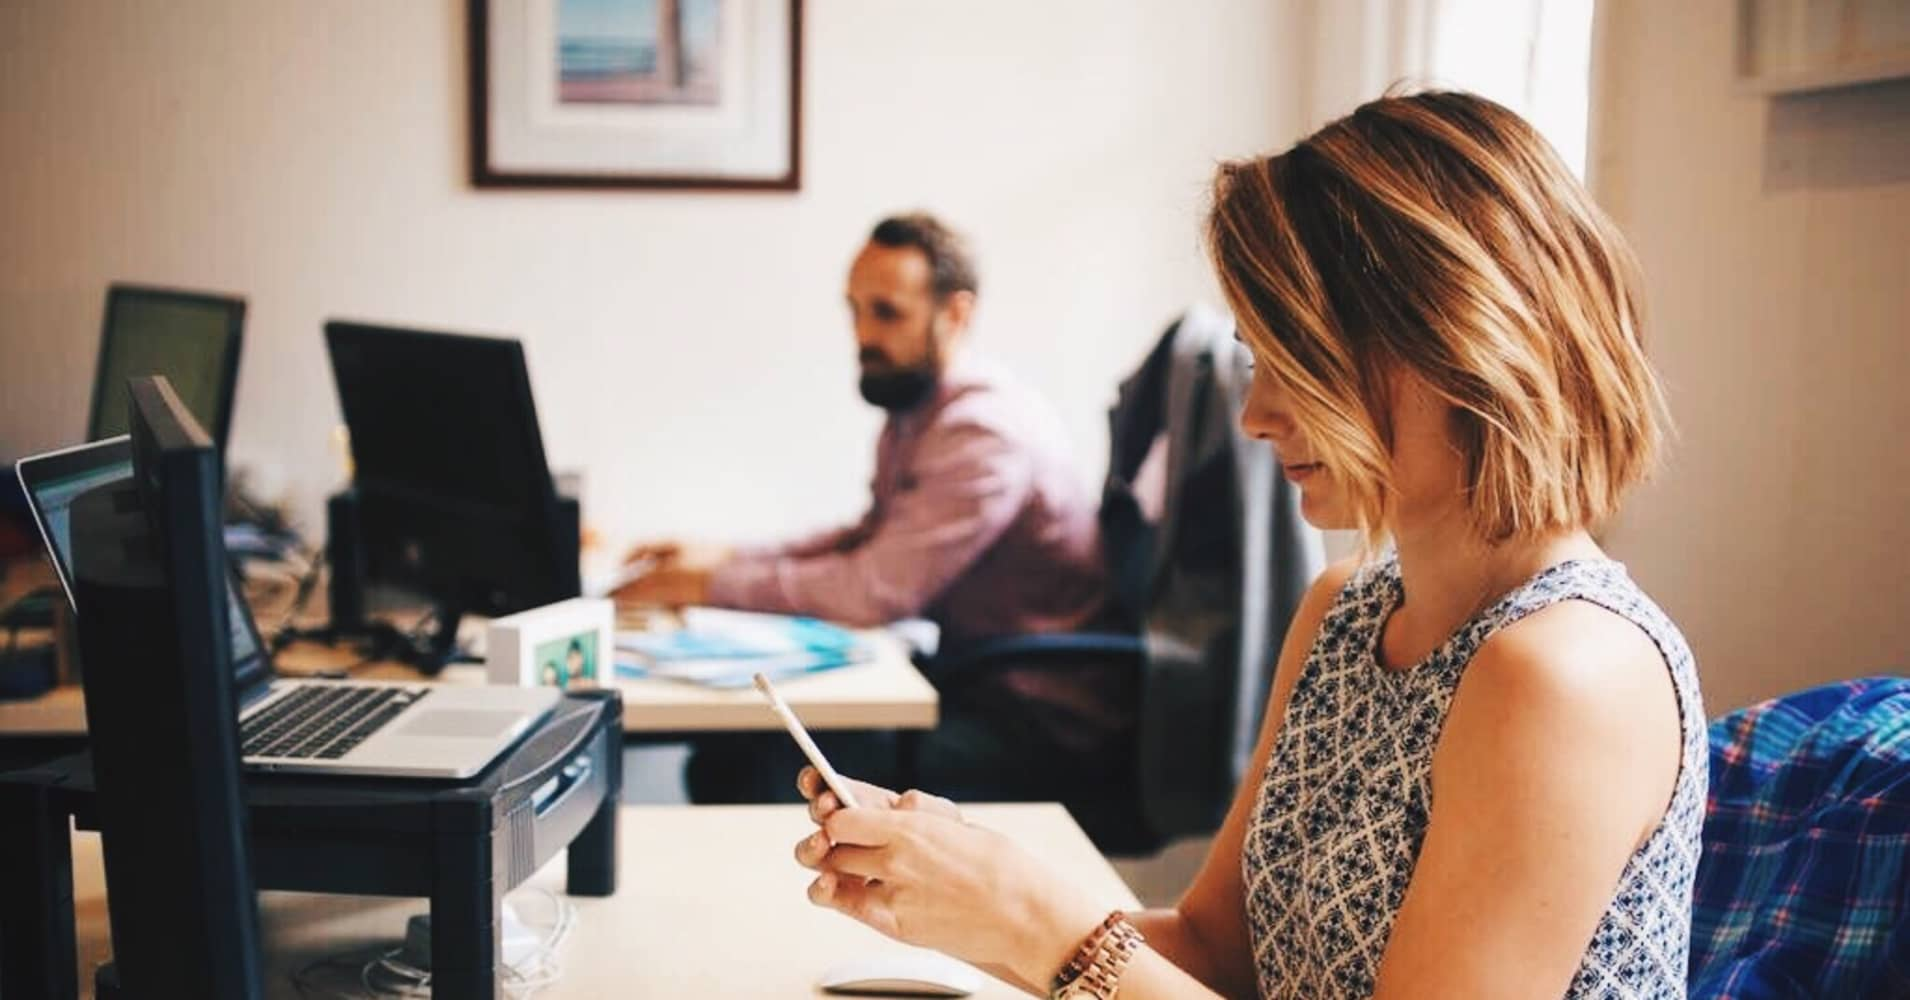 A woman and man work at their desks.